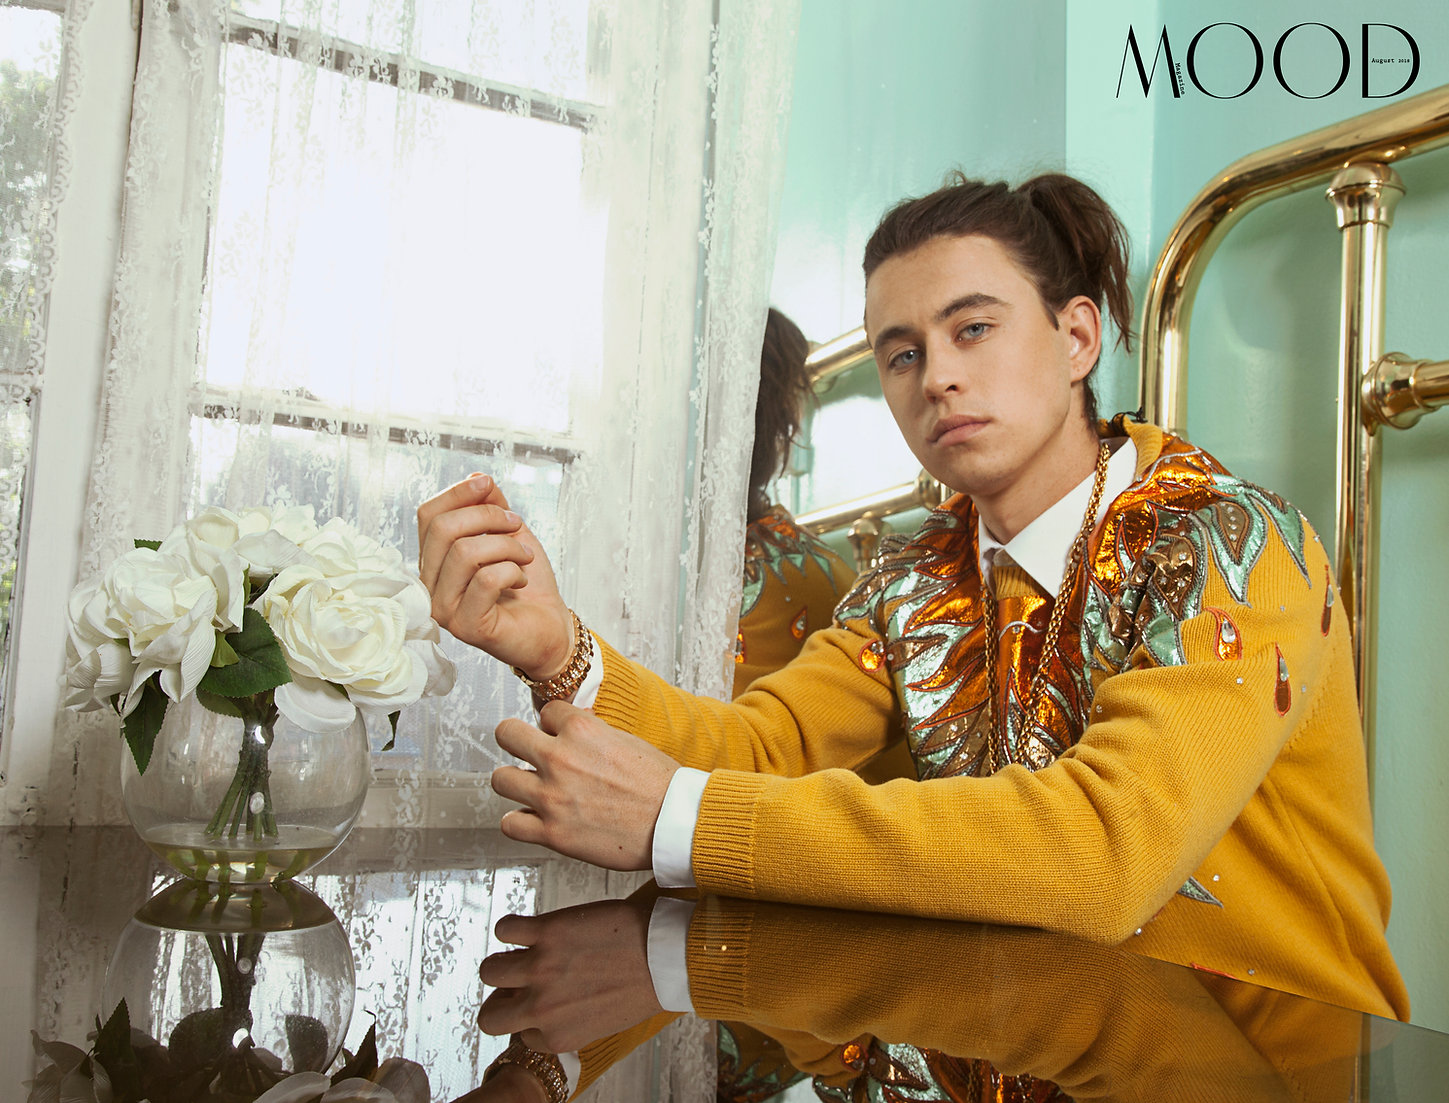 MOOD magazine sits down with internet superstar Nash Grier for the may cover in collaboration with Gucci  Creative director  photographer edwin ortega